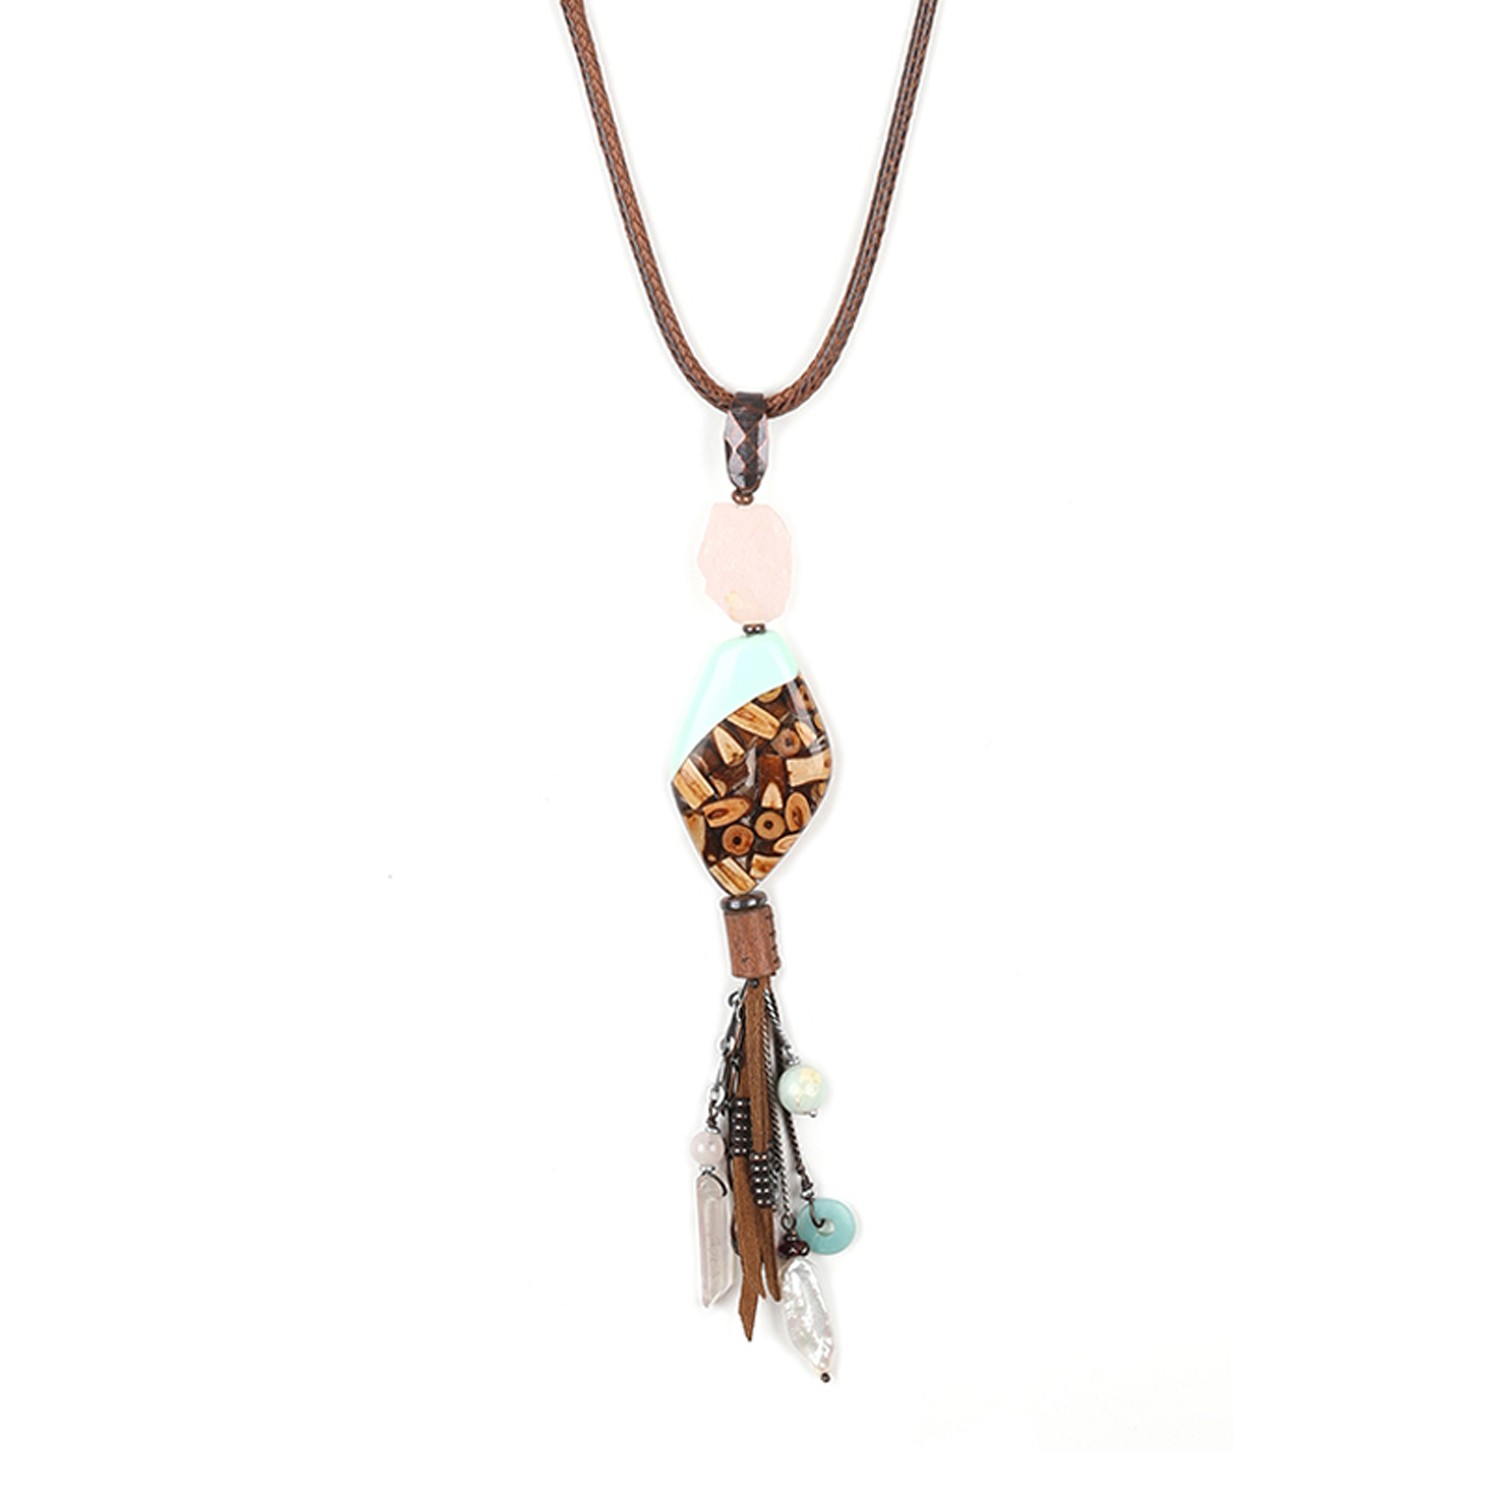 HOCUS POCUS collier long